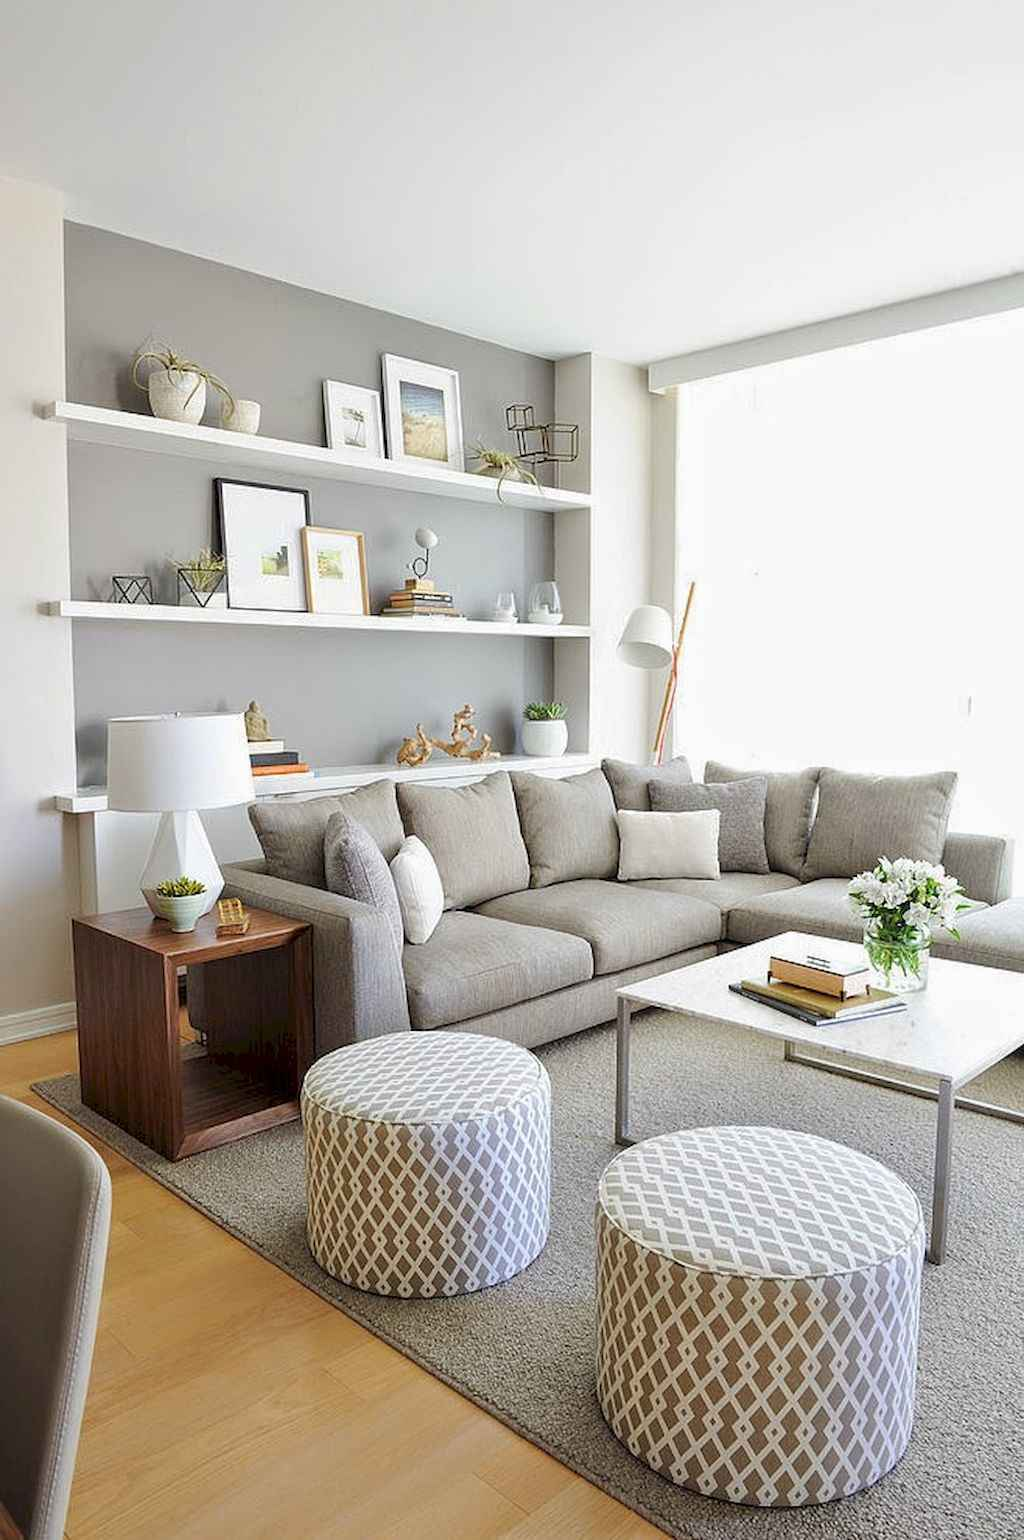 Awesome apartment living room decorating ideas (26)